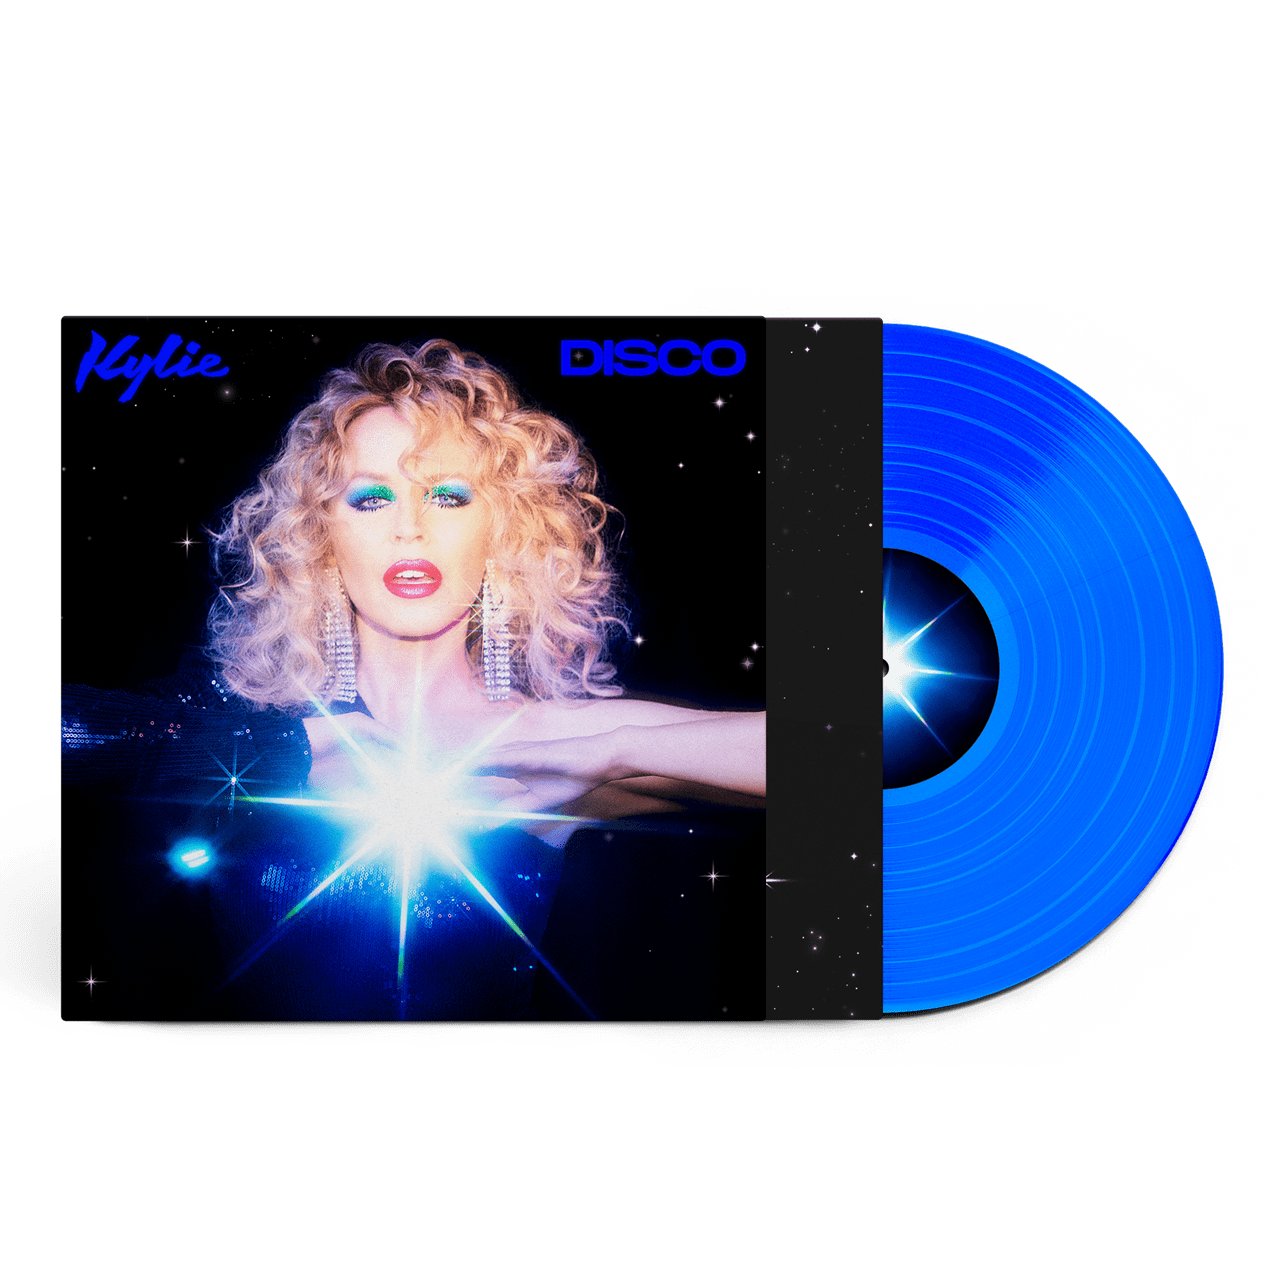 Kylie -  Disco Limited Edition Transparent Blue Colour Vinyl Record Album